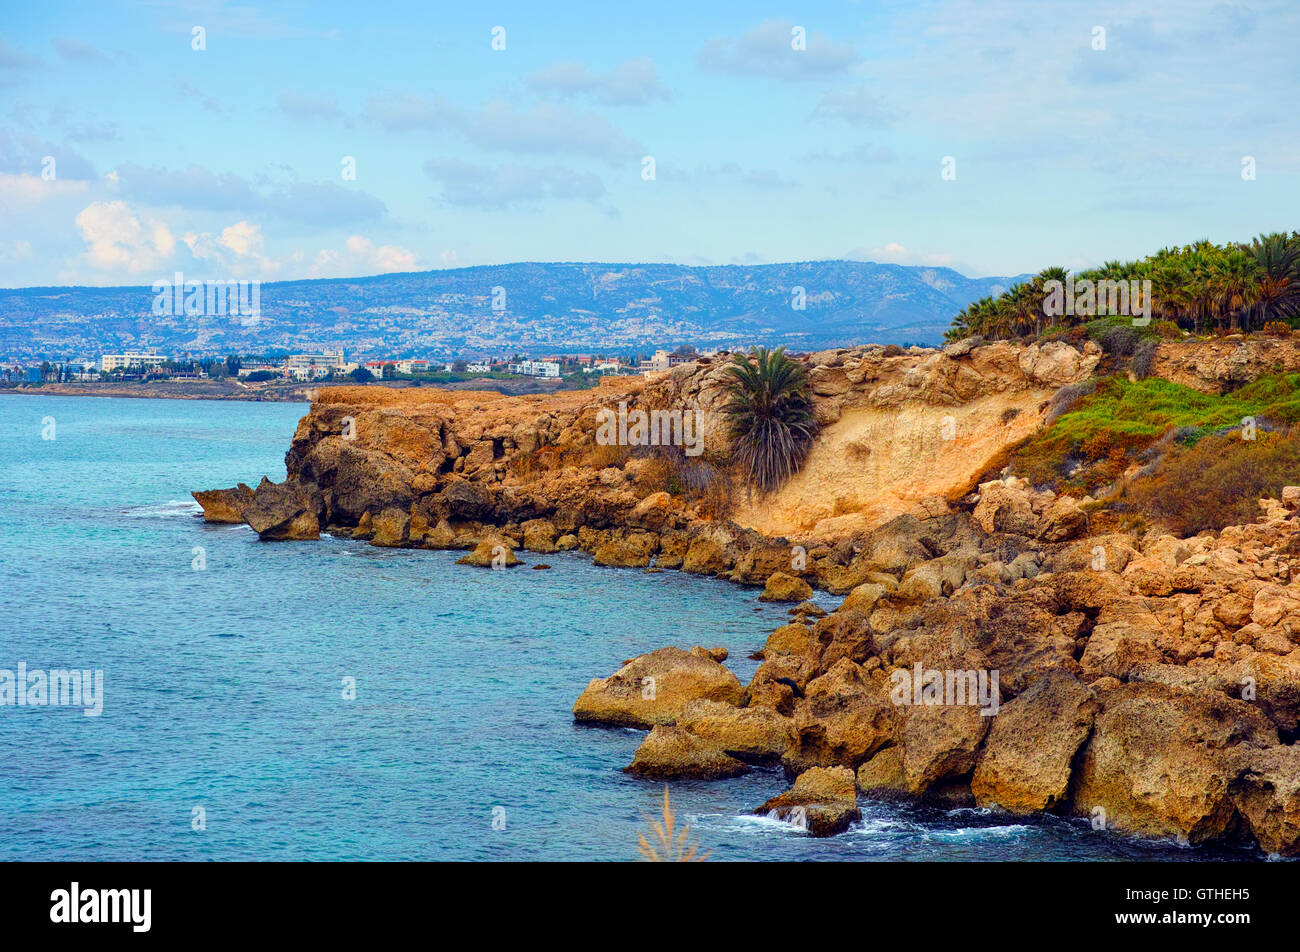 Seacoast with rocks and mountains view. Mediterranean Sea, Cyprus, Paphos region. - Stock Image